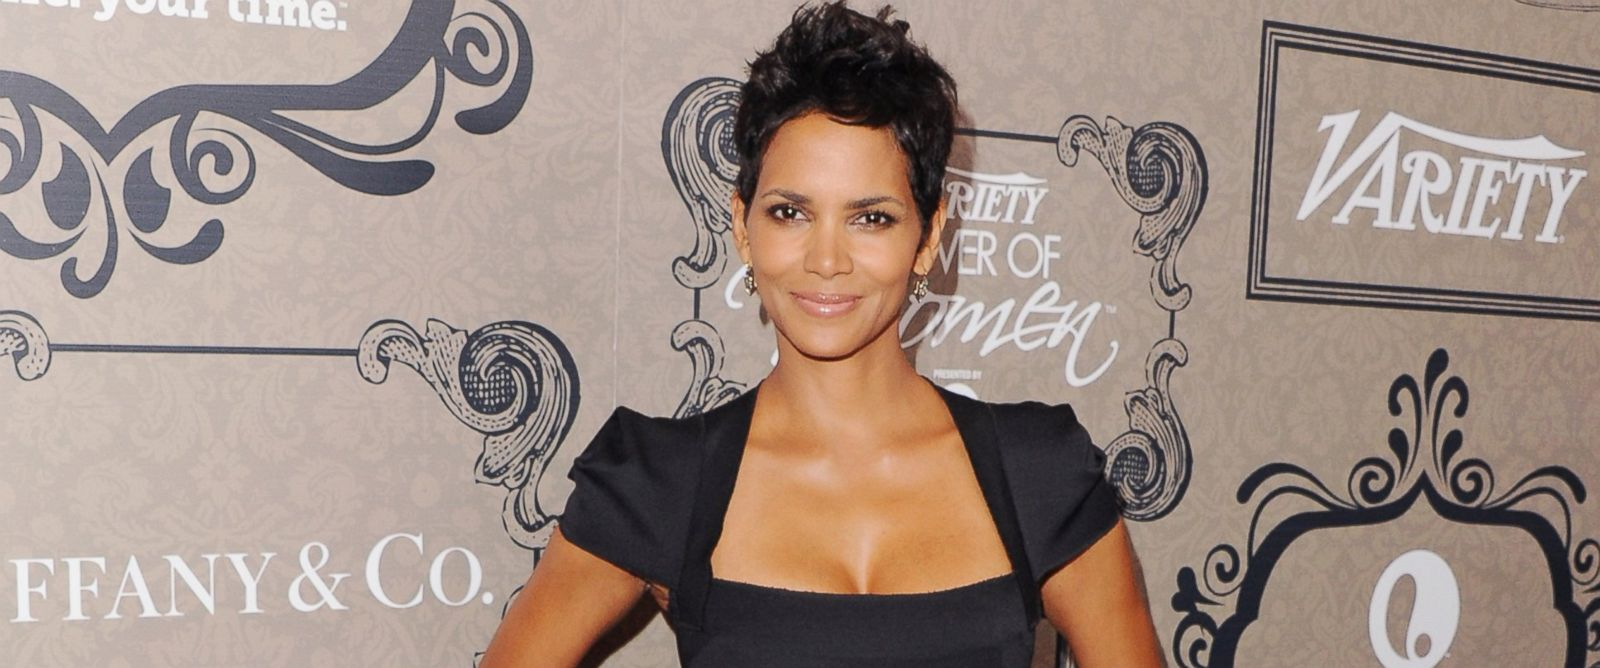 PHOTO: Actress Halle Berry arrives at the Varietys 4th Annual Power of Women Event Presented by Lifetime at the Beverly Wilshire Four Seasons Hotel in this Oct. 5, 2012, file photo.